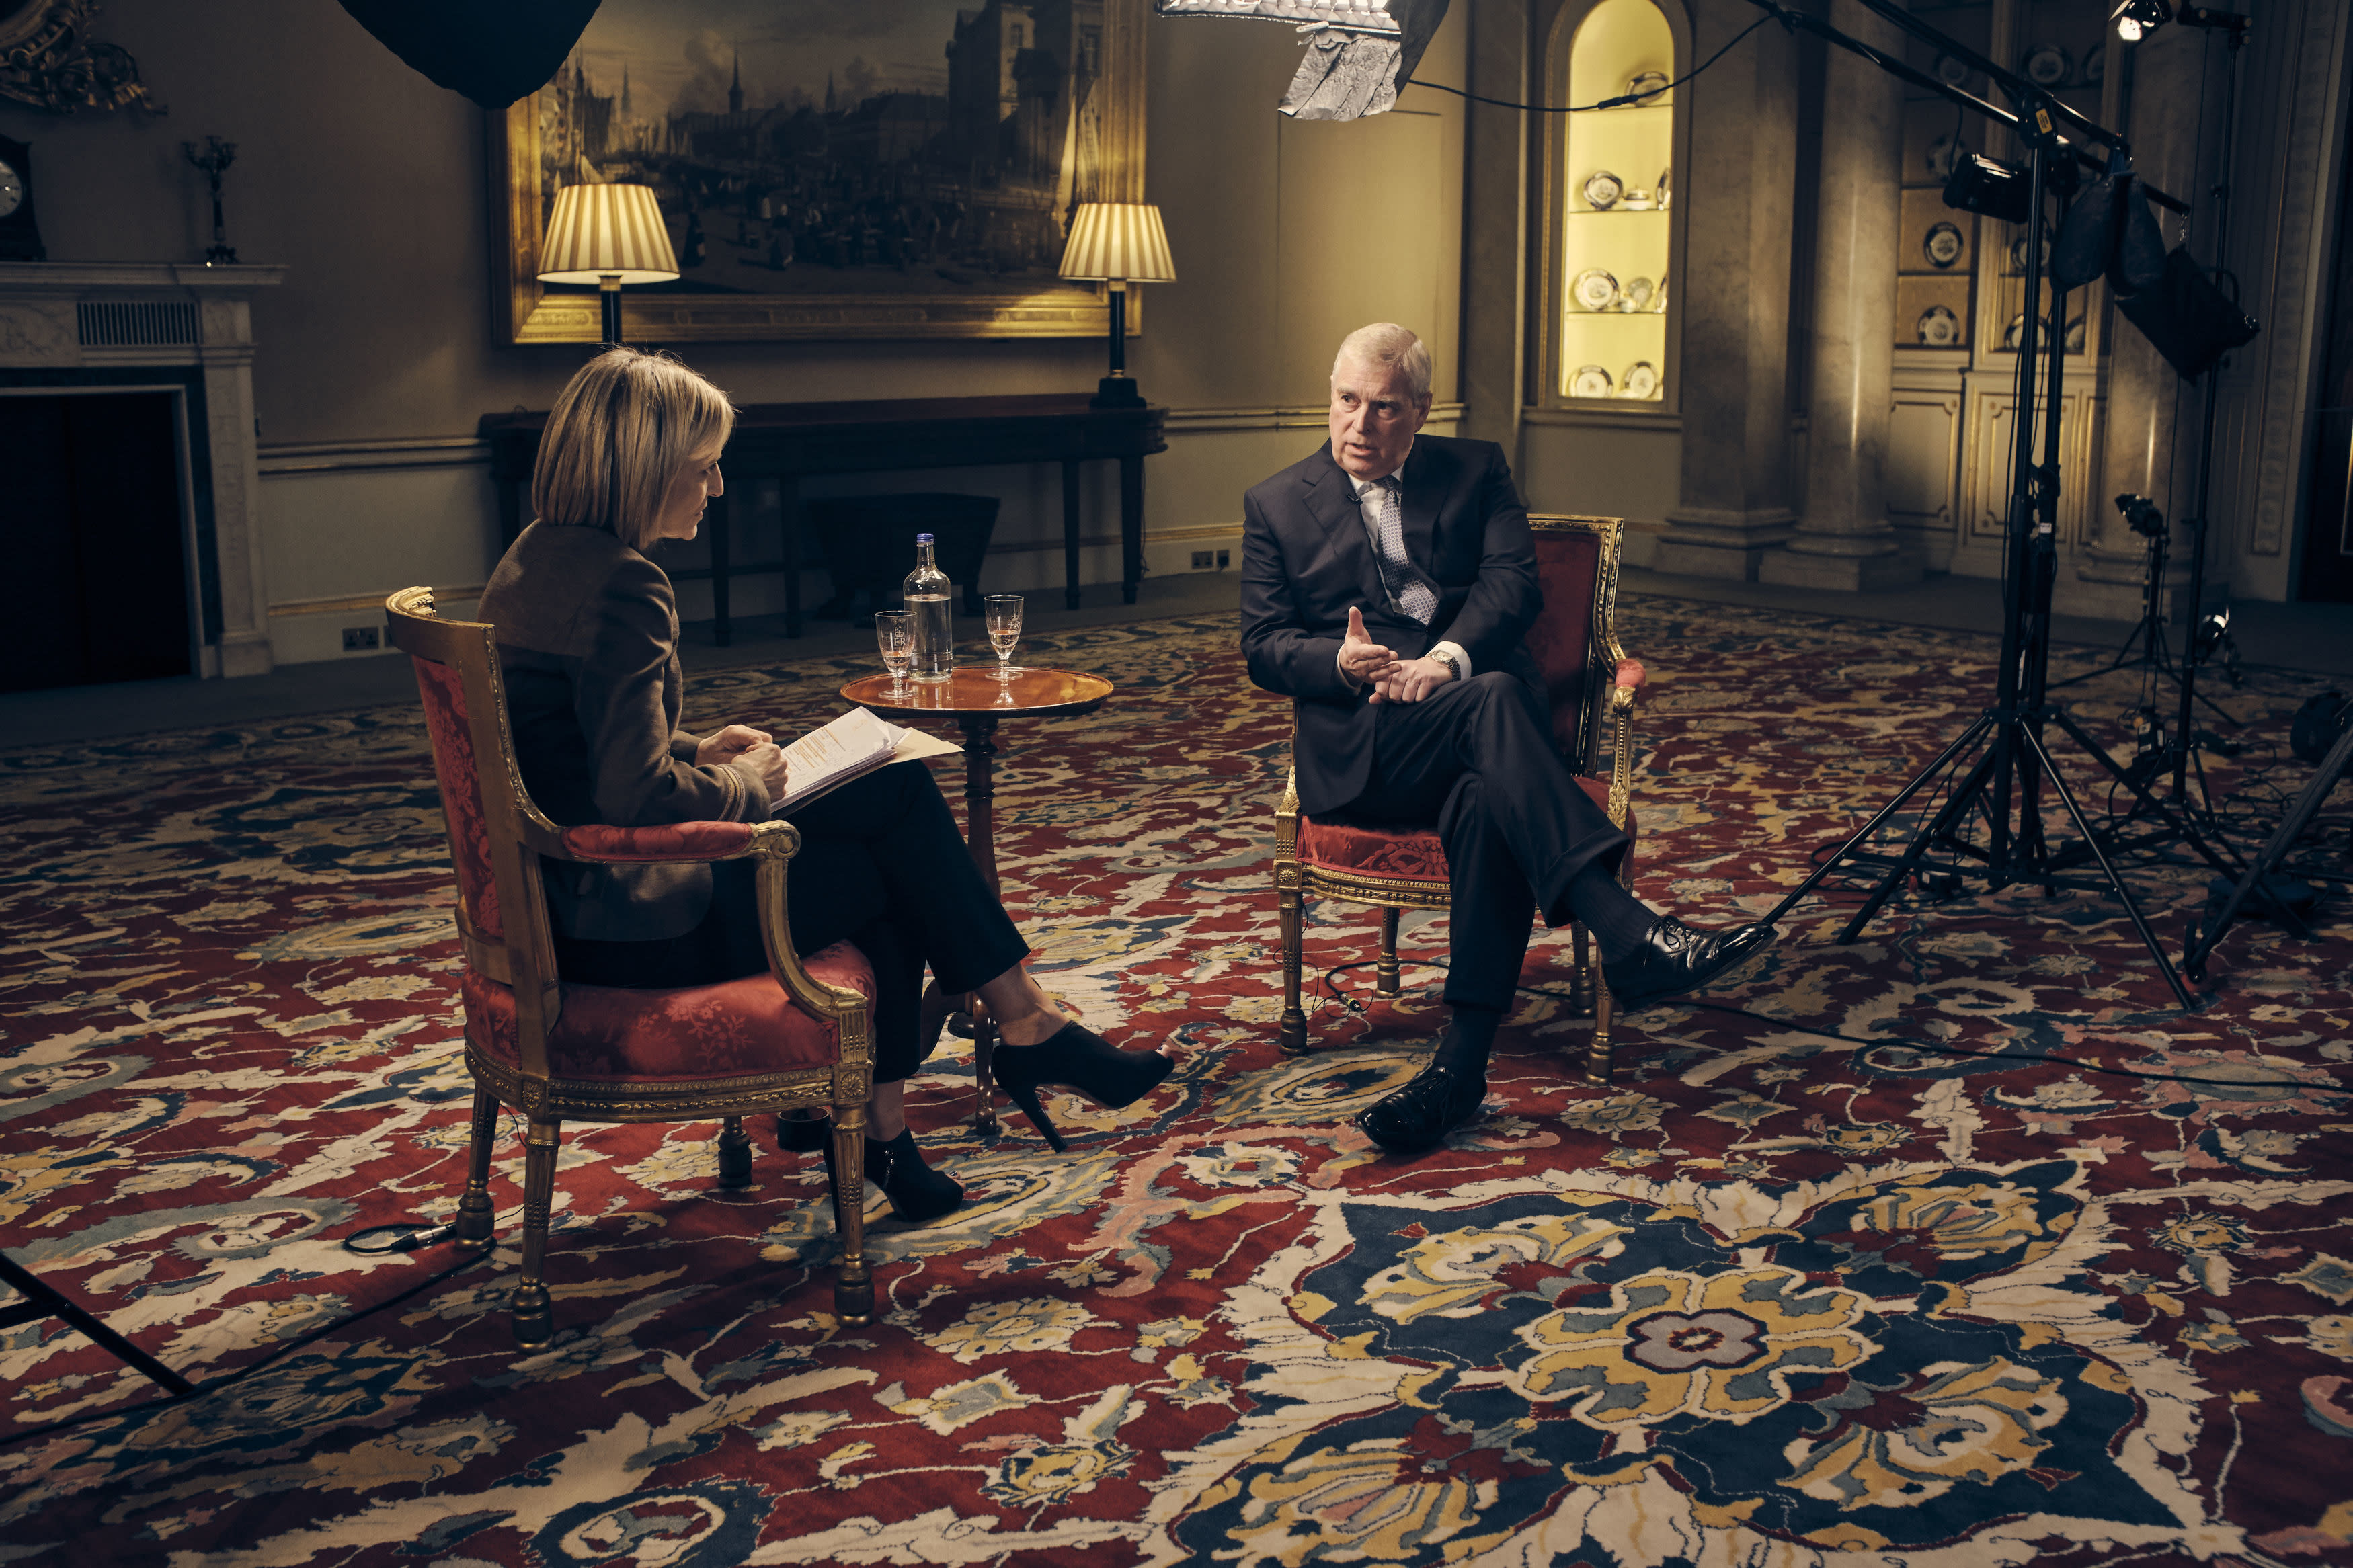 "For use in UK, Ireland or Benelux countries only Undated BBC handout photo showing the Duke of York , speaking for the first time about his links to Jeffrey Epstein in an interview with BBC Newsnight's Emily Maitlis. The Queen gave her approval for the Duke's ""disastrous"" interview about the Jeffrey Epstein sex scandal, Maitlis has said."